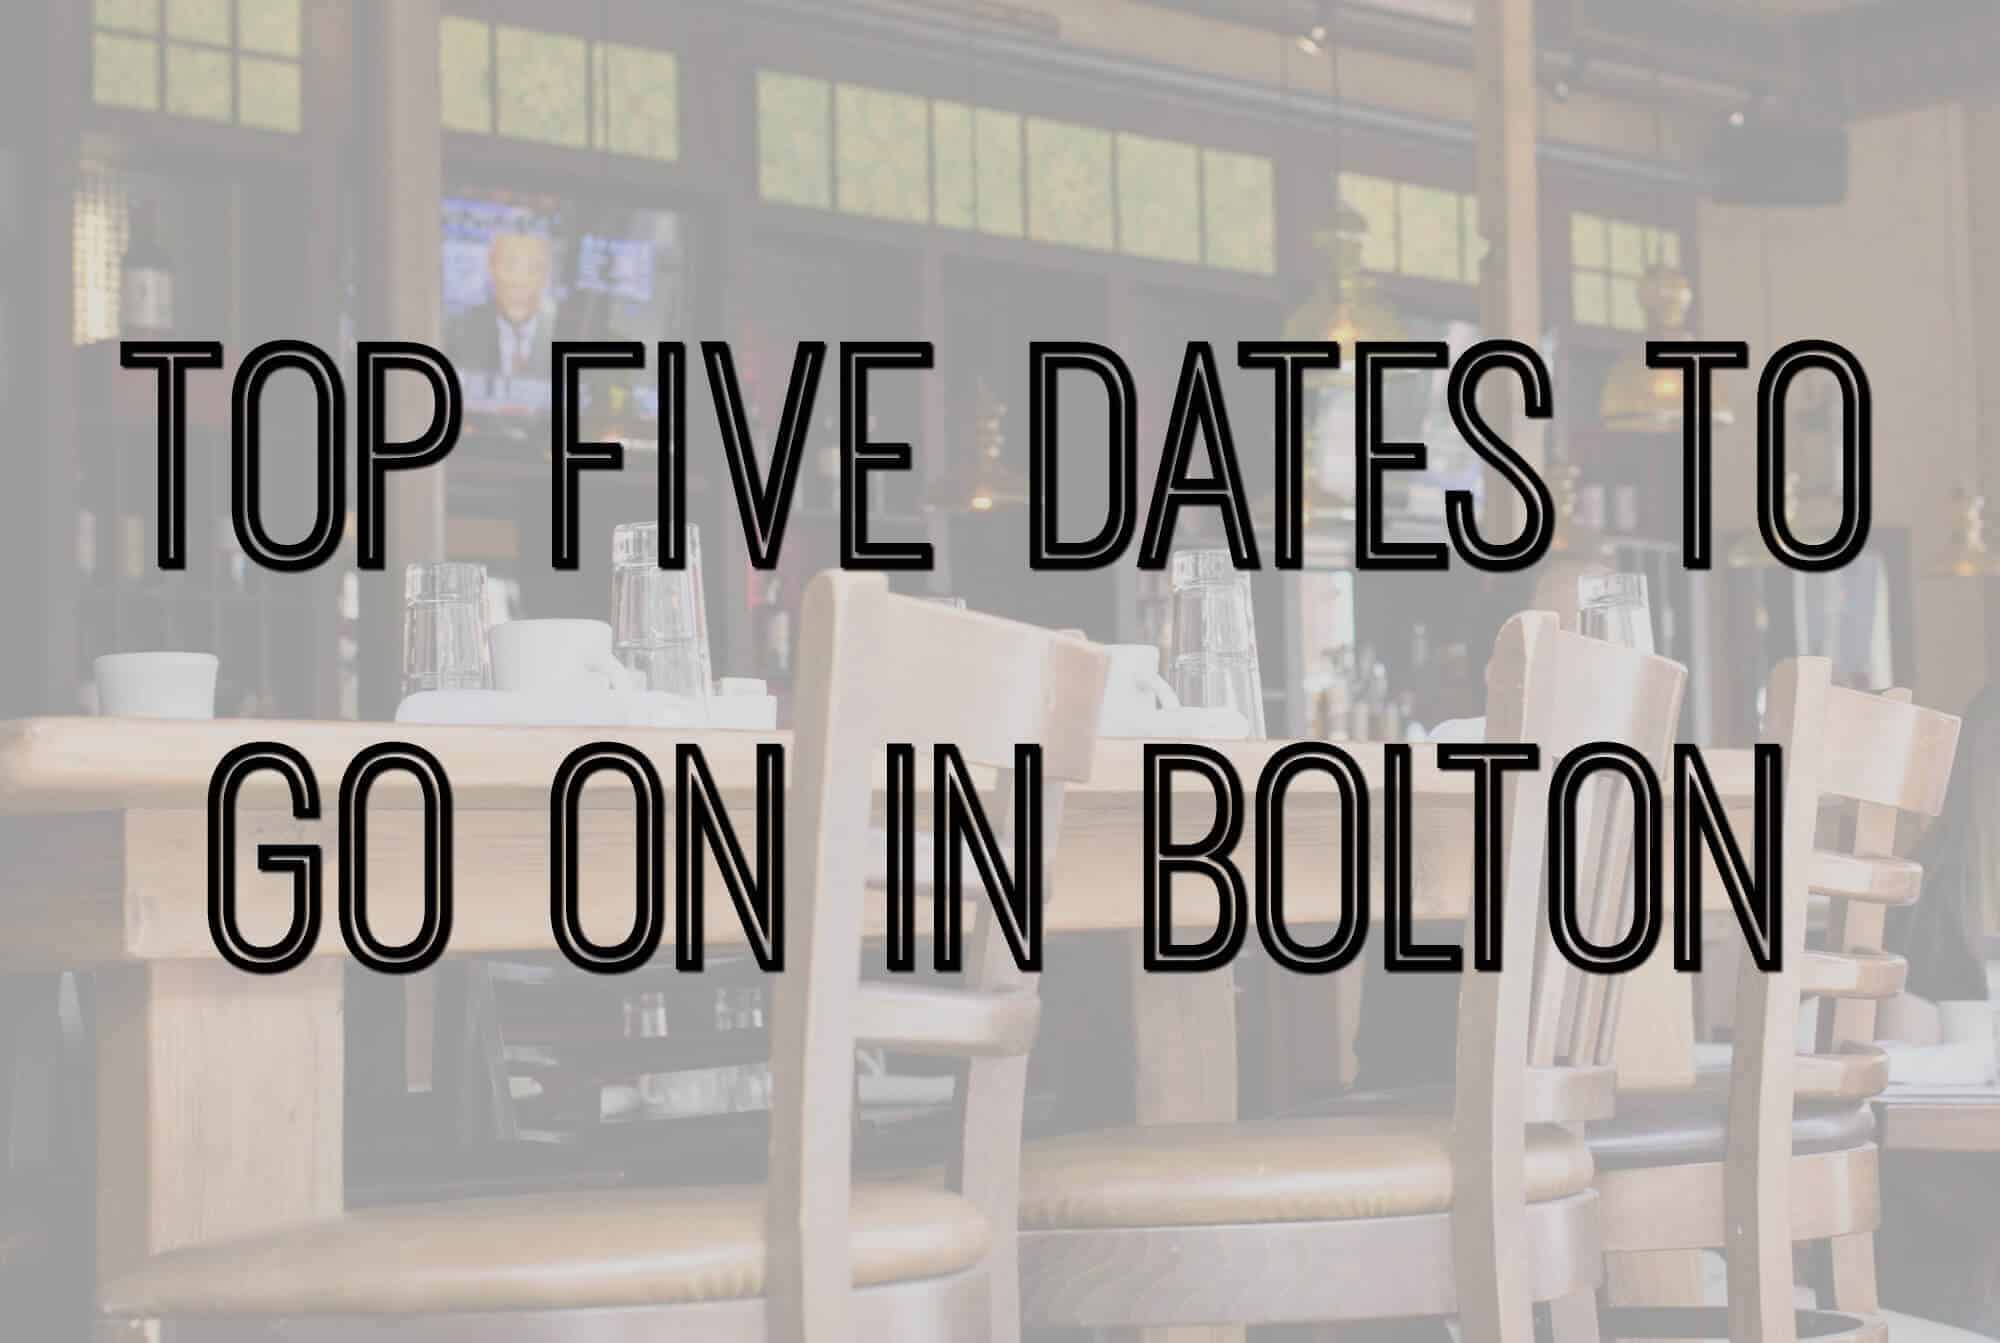 Top Five Dates To Go On In Bolton